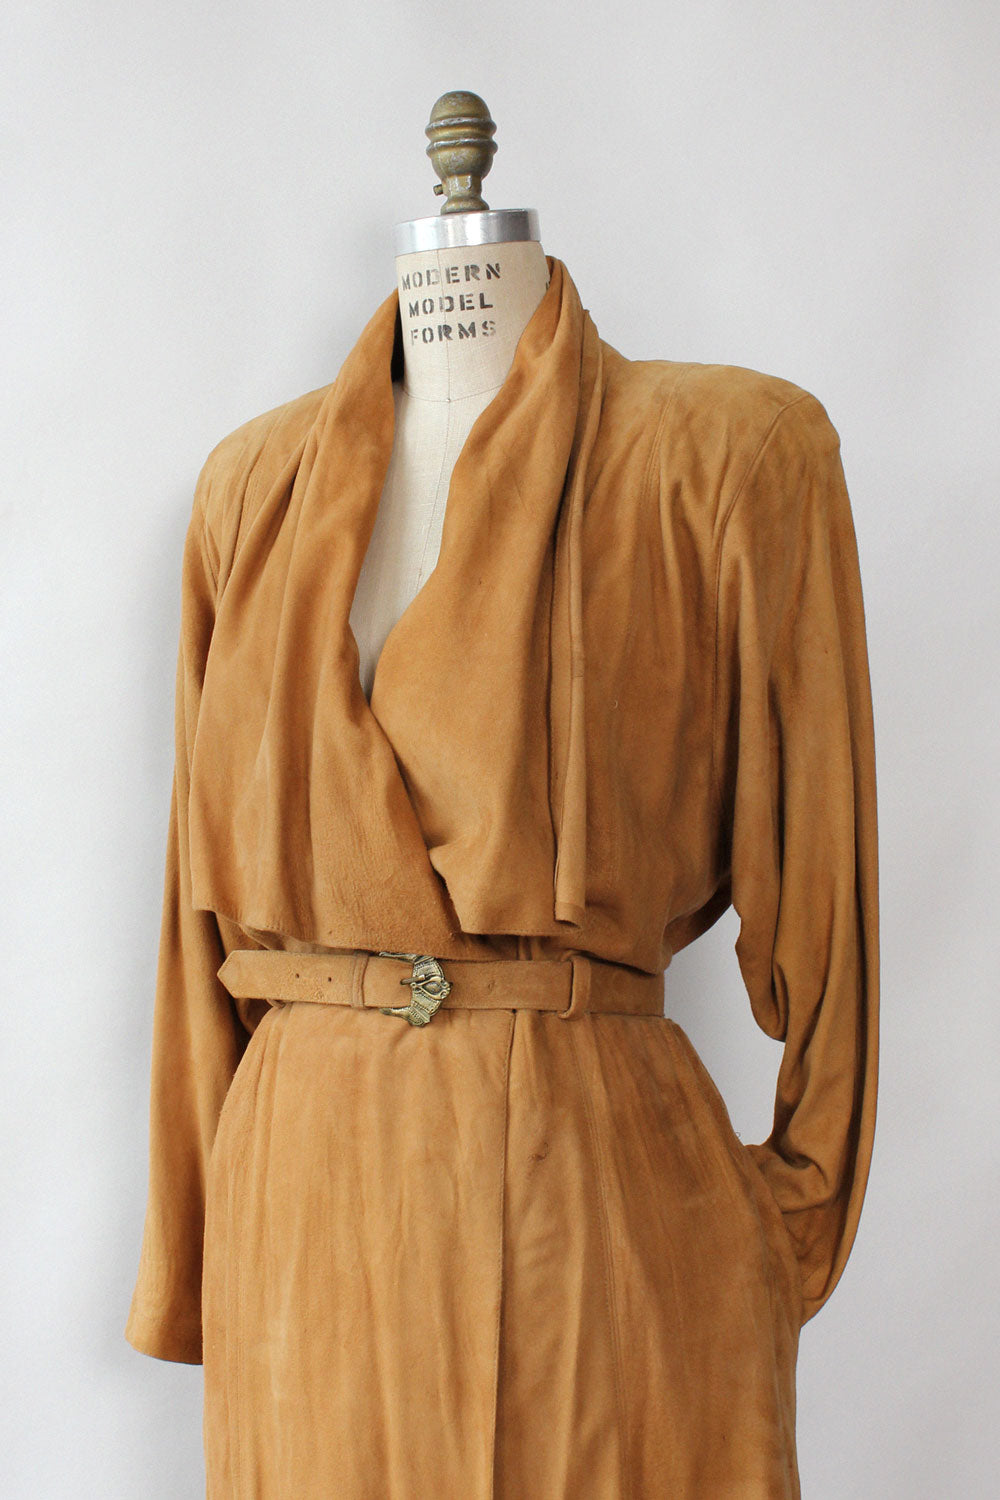 Draped Suede Duster Dress M/L